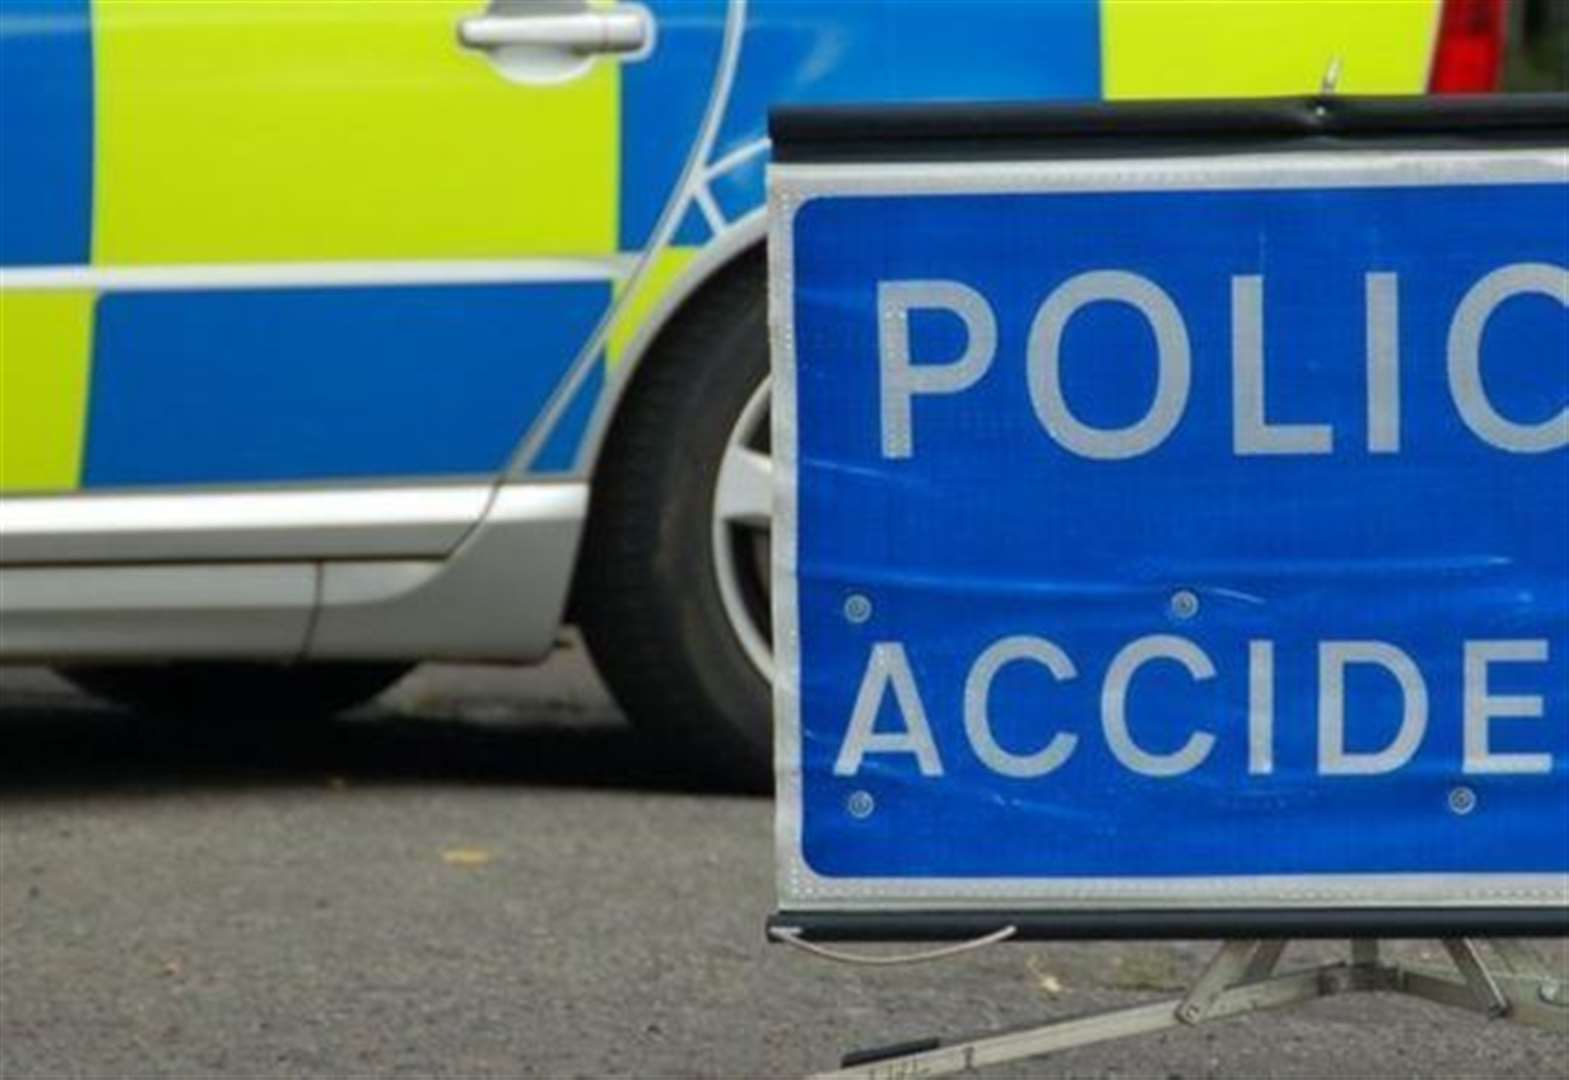 Firefighters called to accident in village